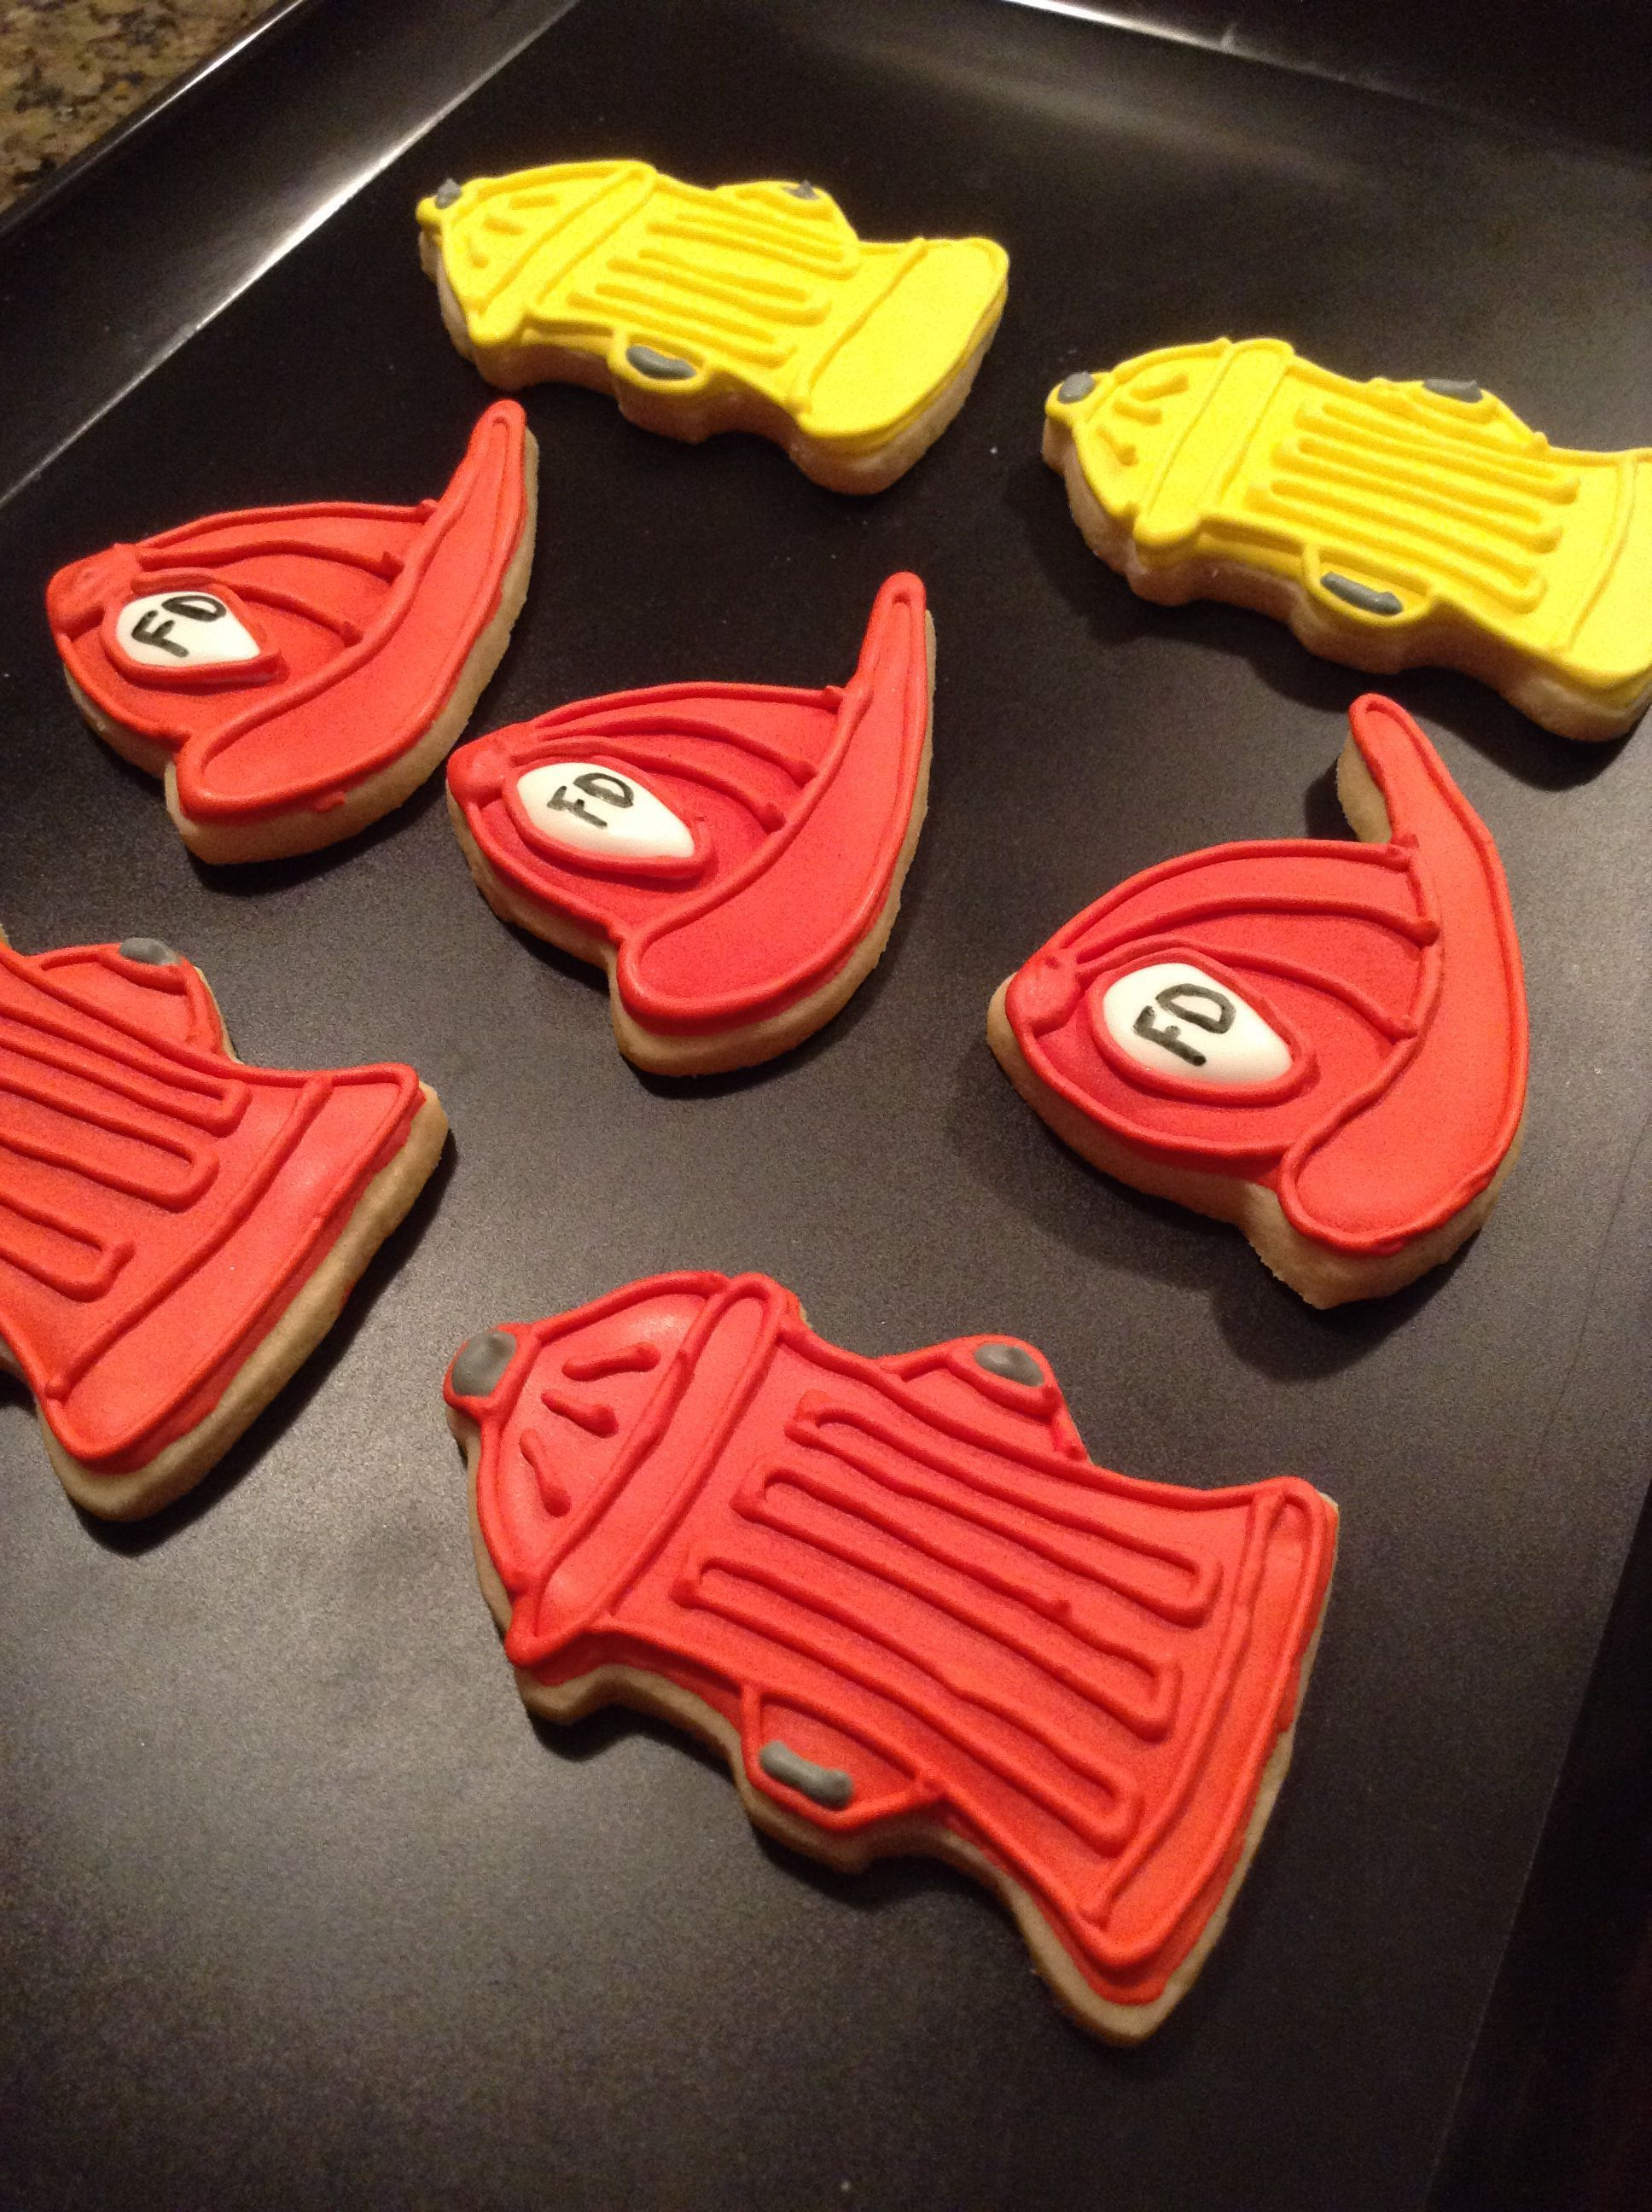 Helmet Cookies : helmet, cookies, Image, Result, ICING, FIREFIGHTER, HELMET, COOKIES, Firefighter, Cookie,, Firetruck, Cake,, Sugar, Cookies